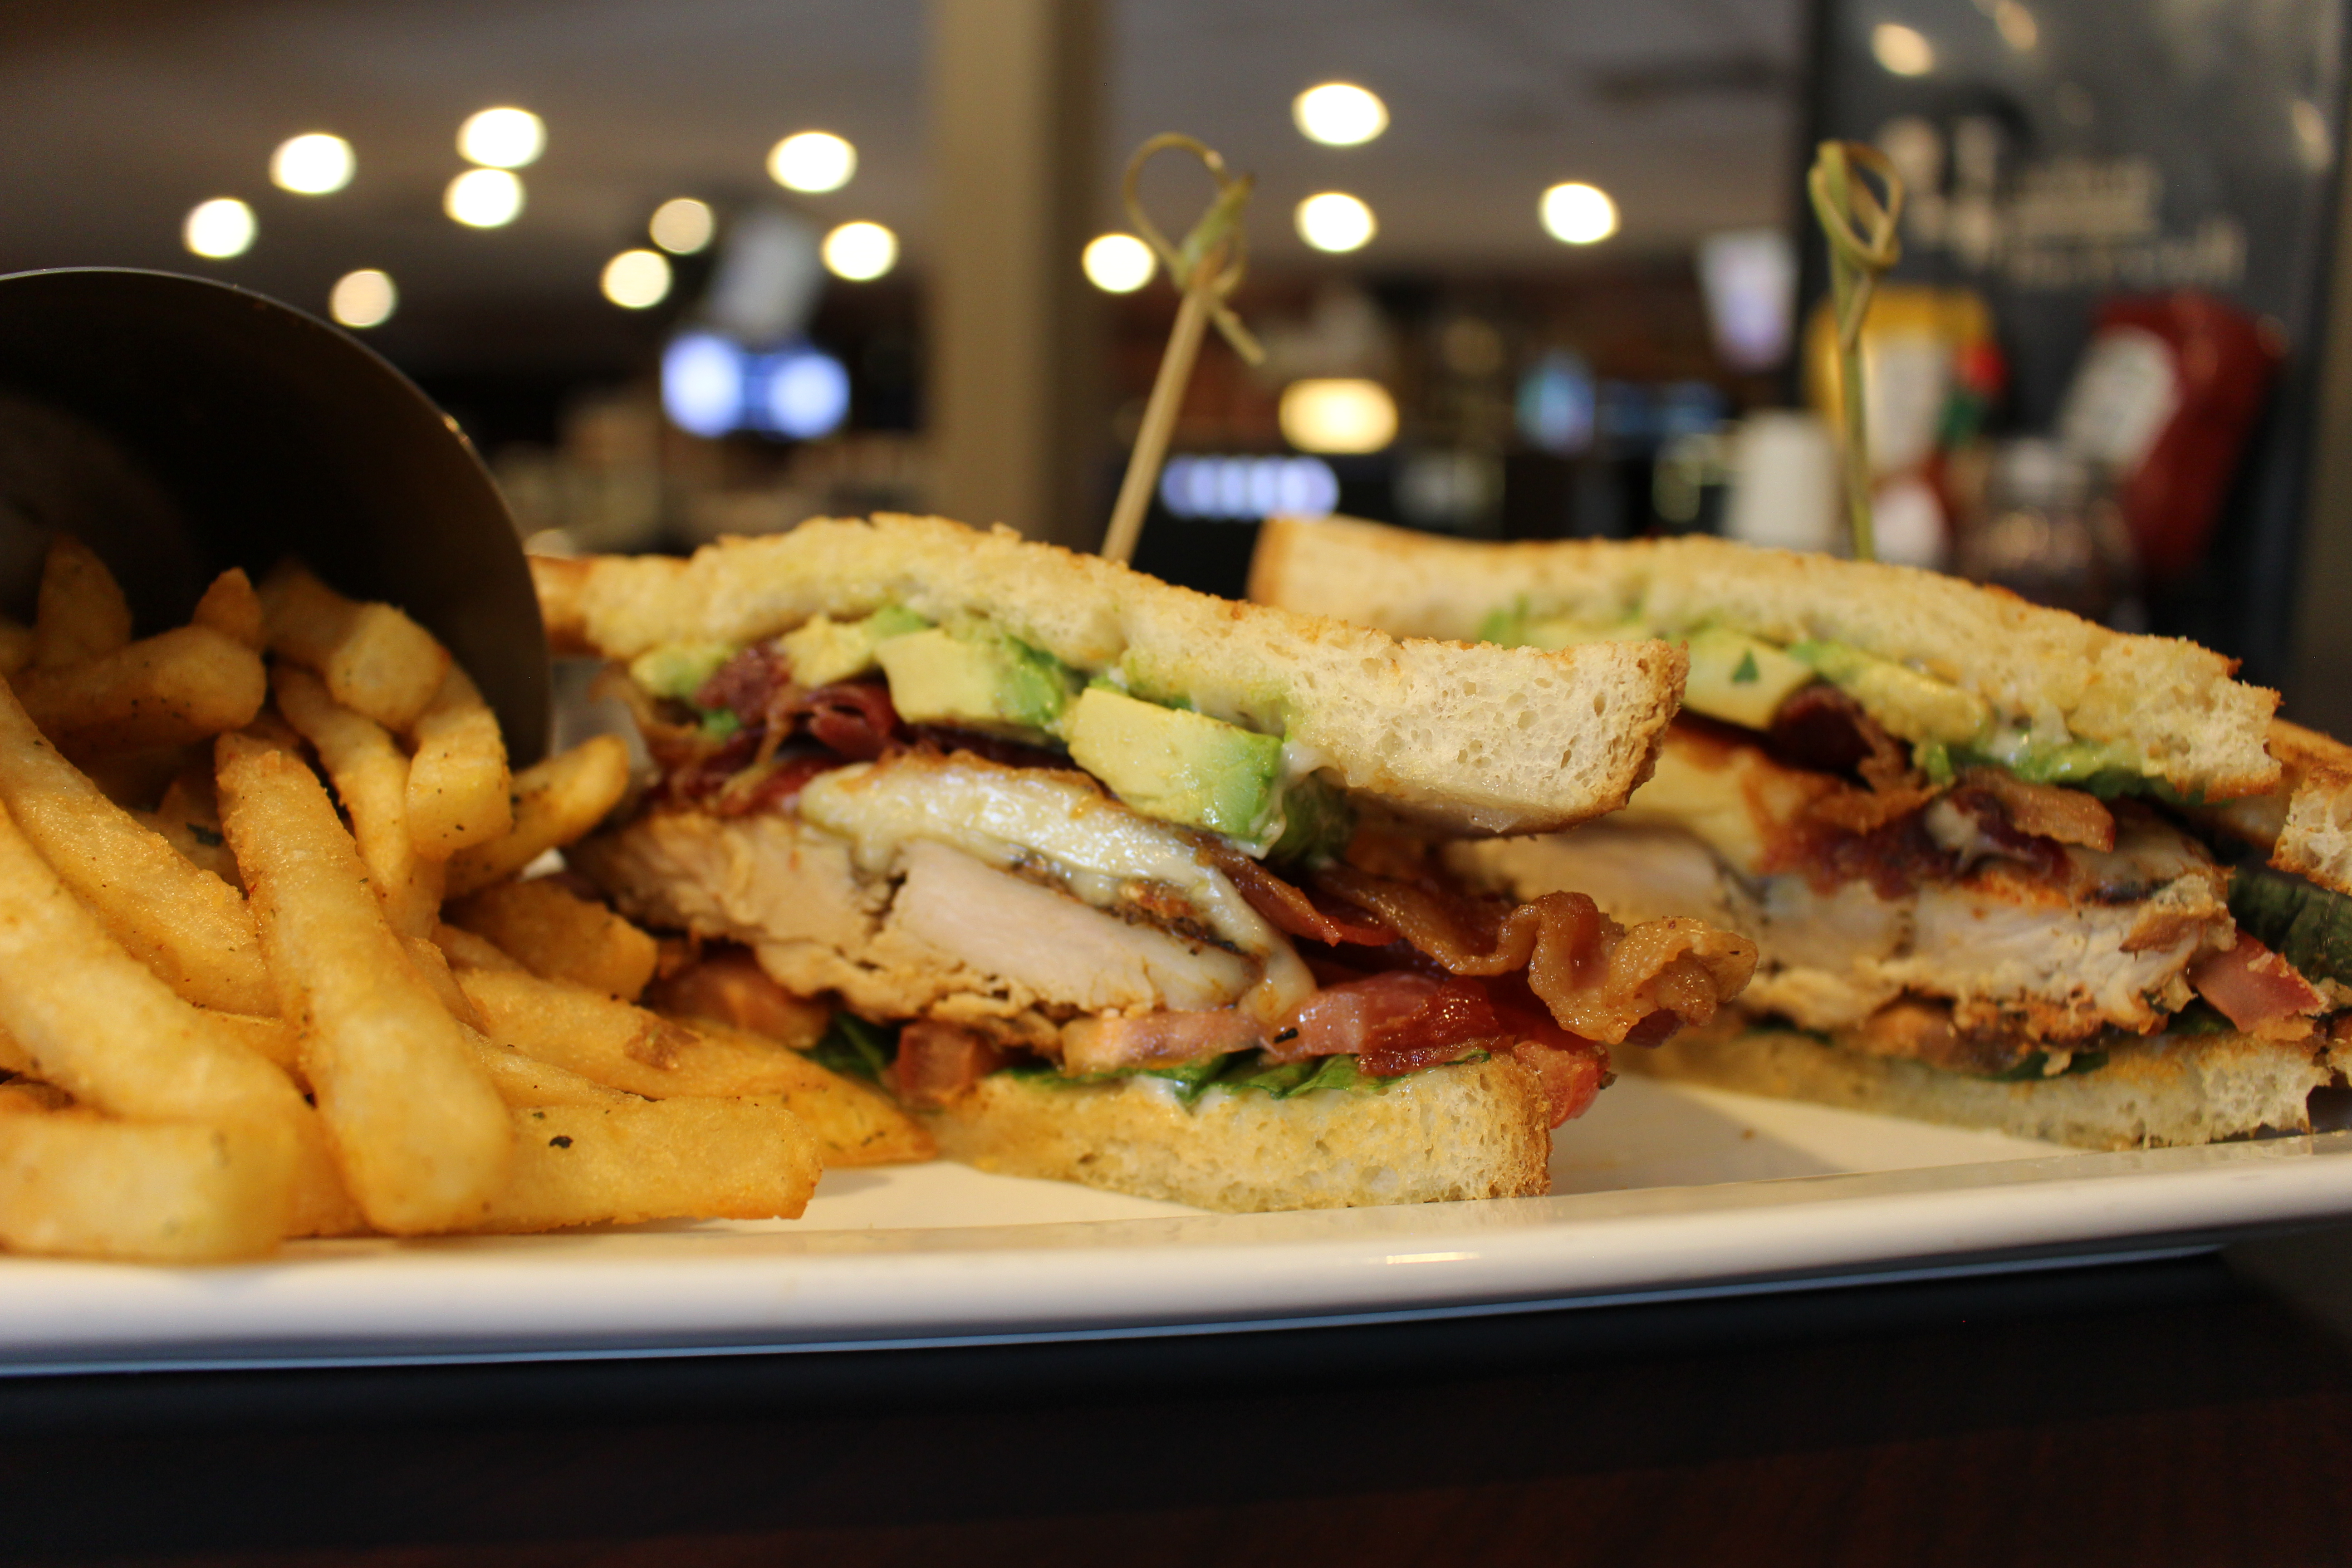 chicken avocado blt | upscale pub fare | scratch kitchen | junction bar & grill | JB's on 41 | Milwaukee, WI